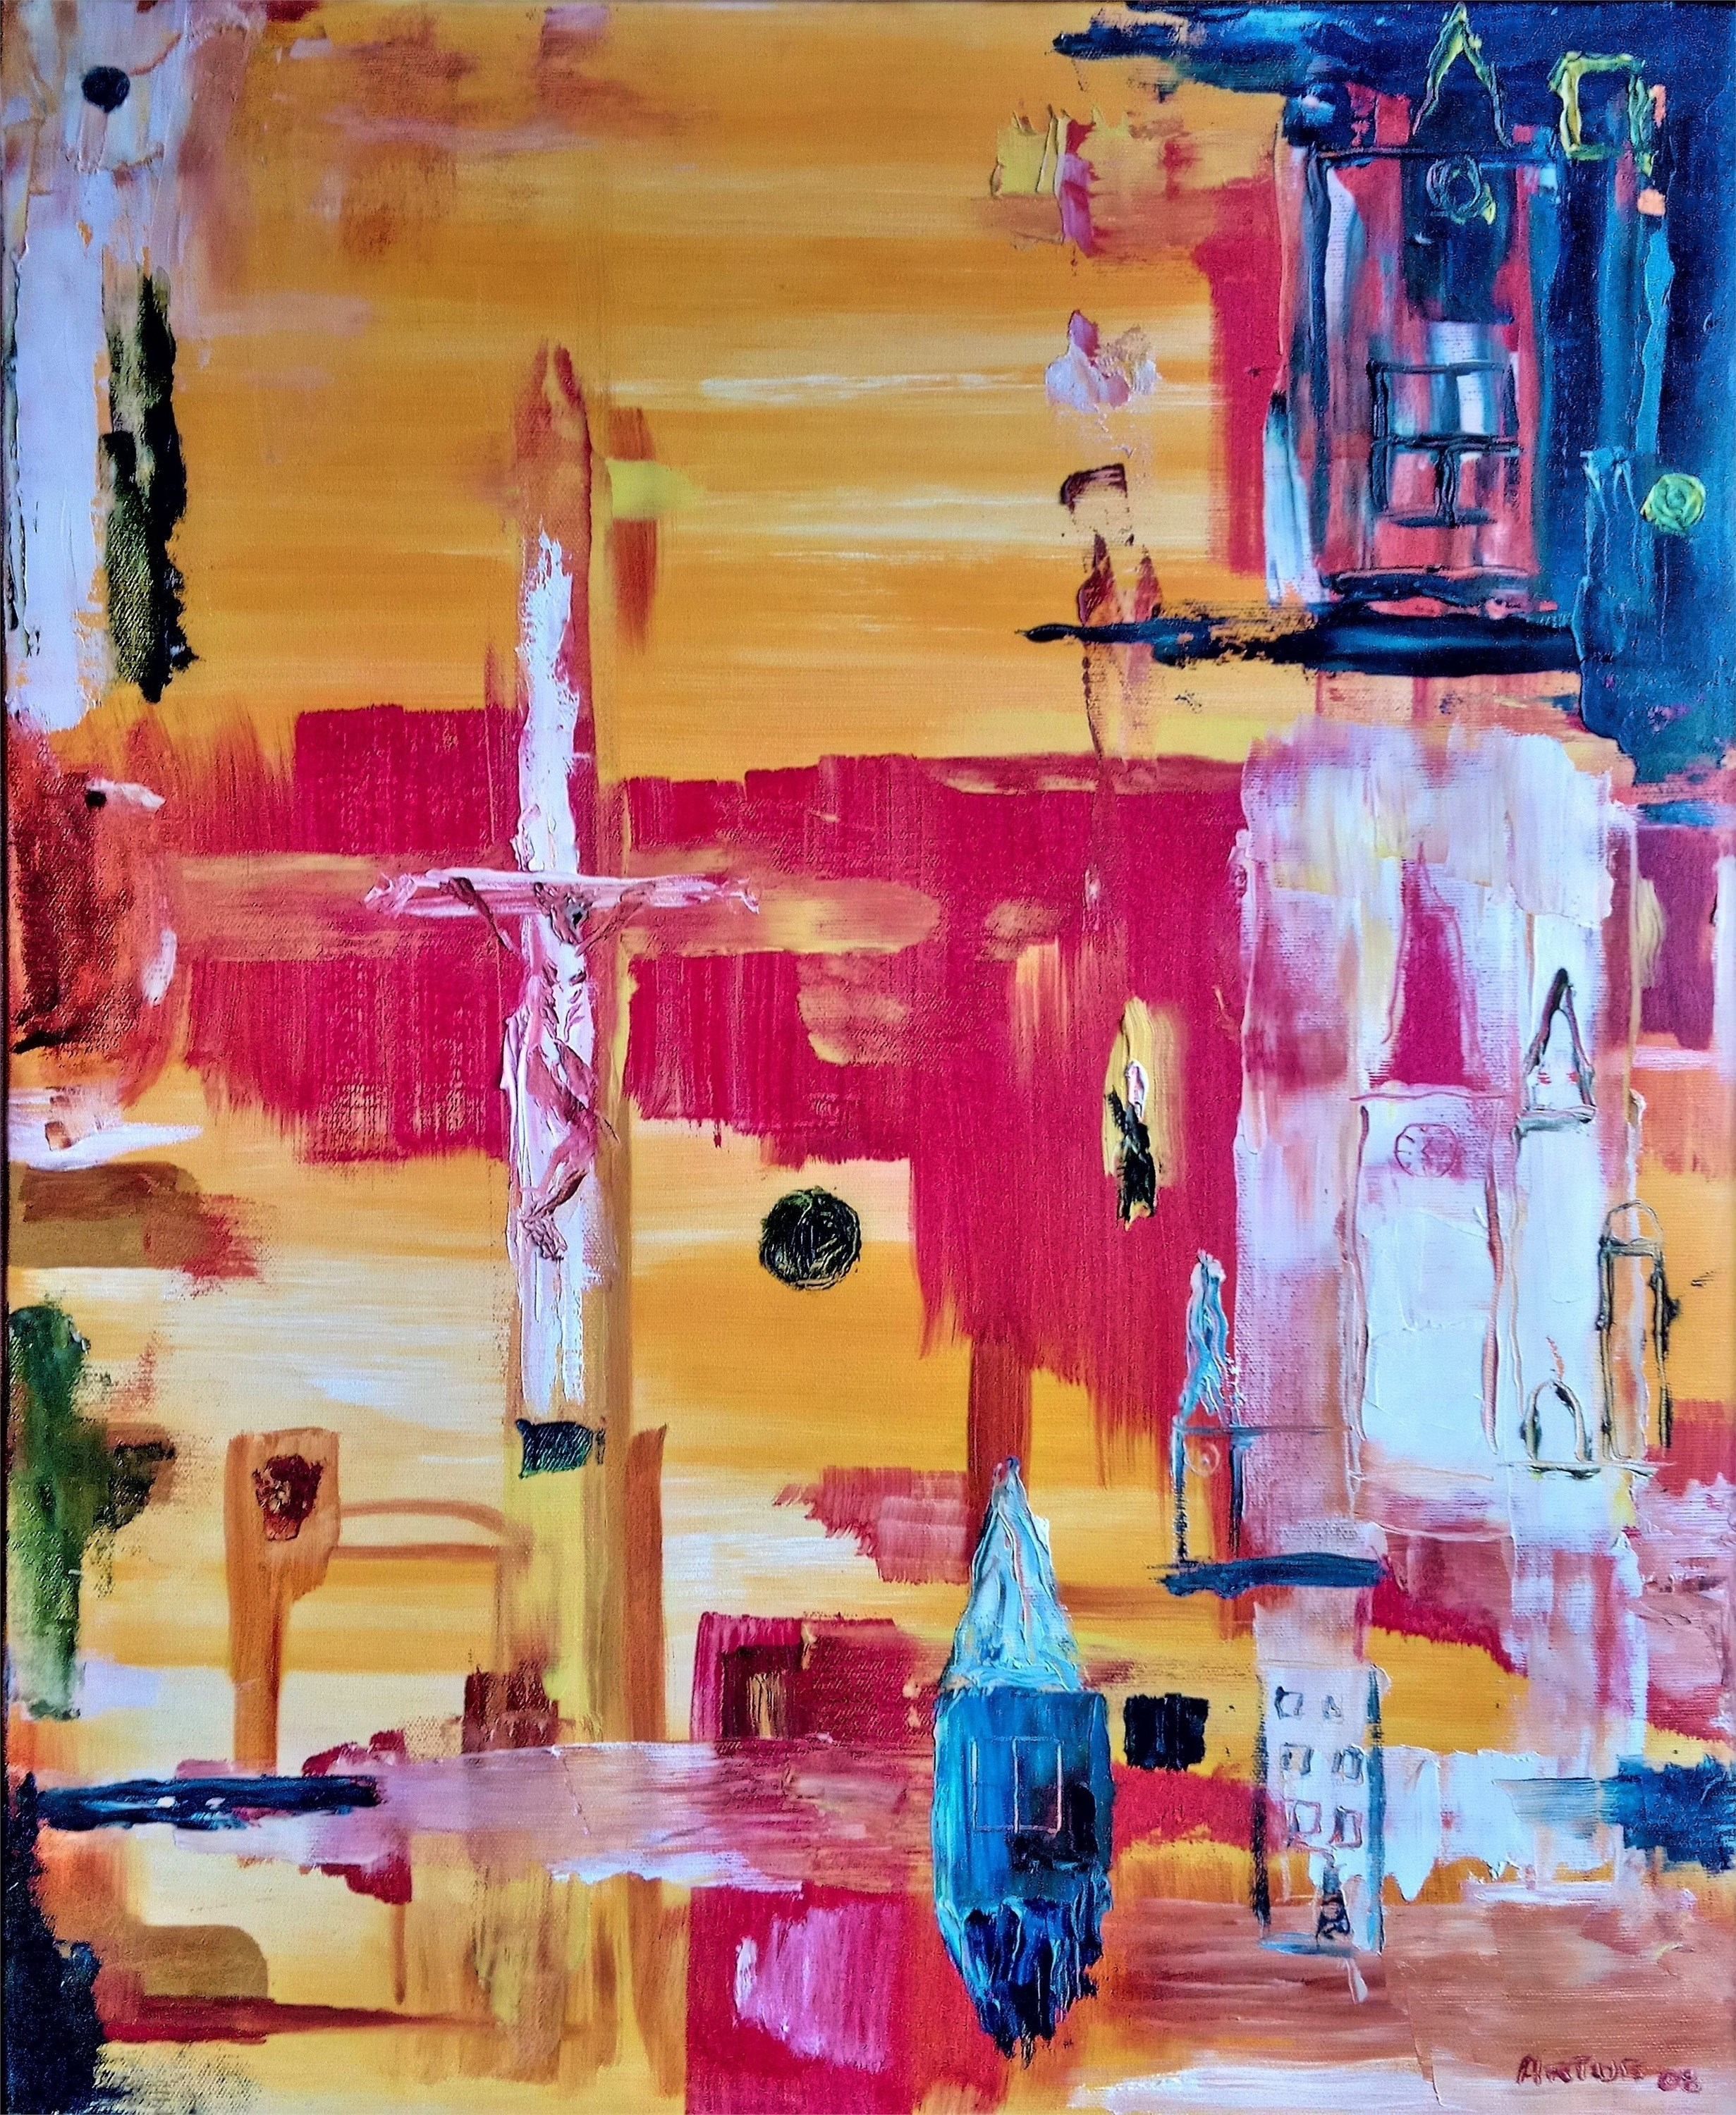 Cristo, original Abstract Oil Painting by Artur Efigénio